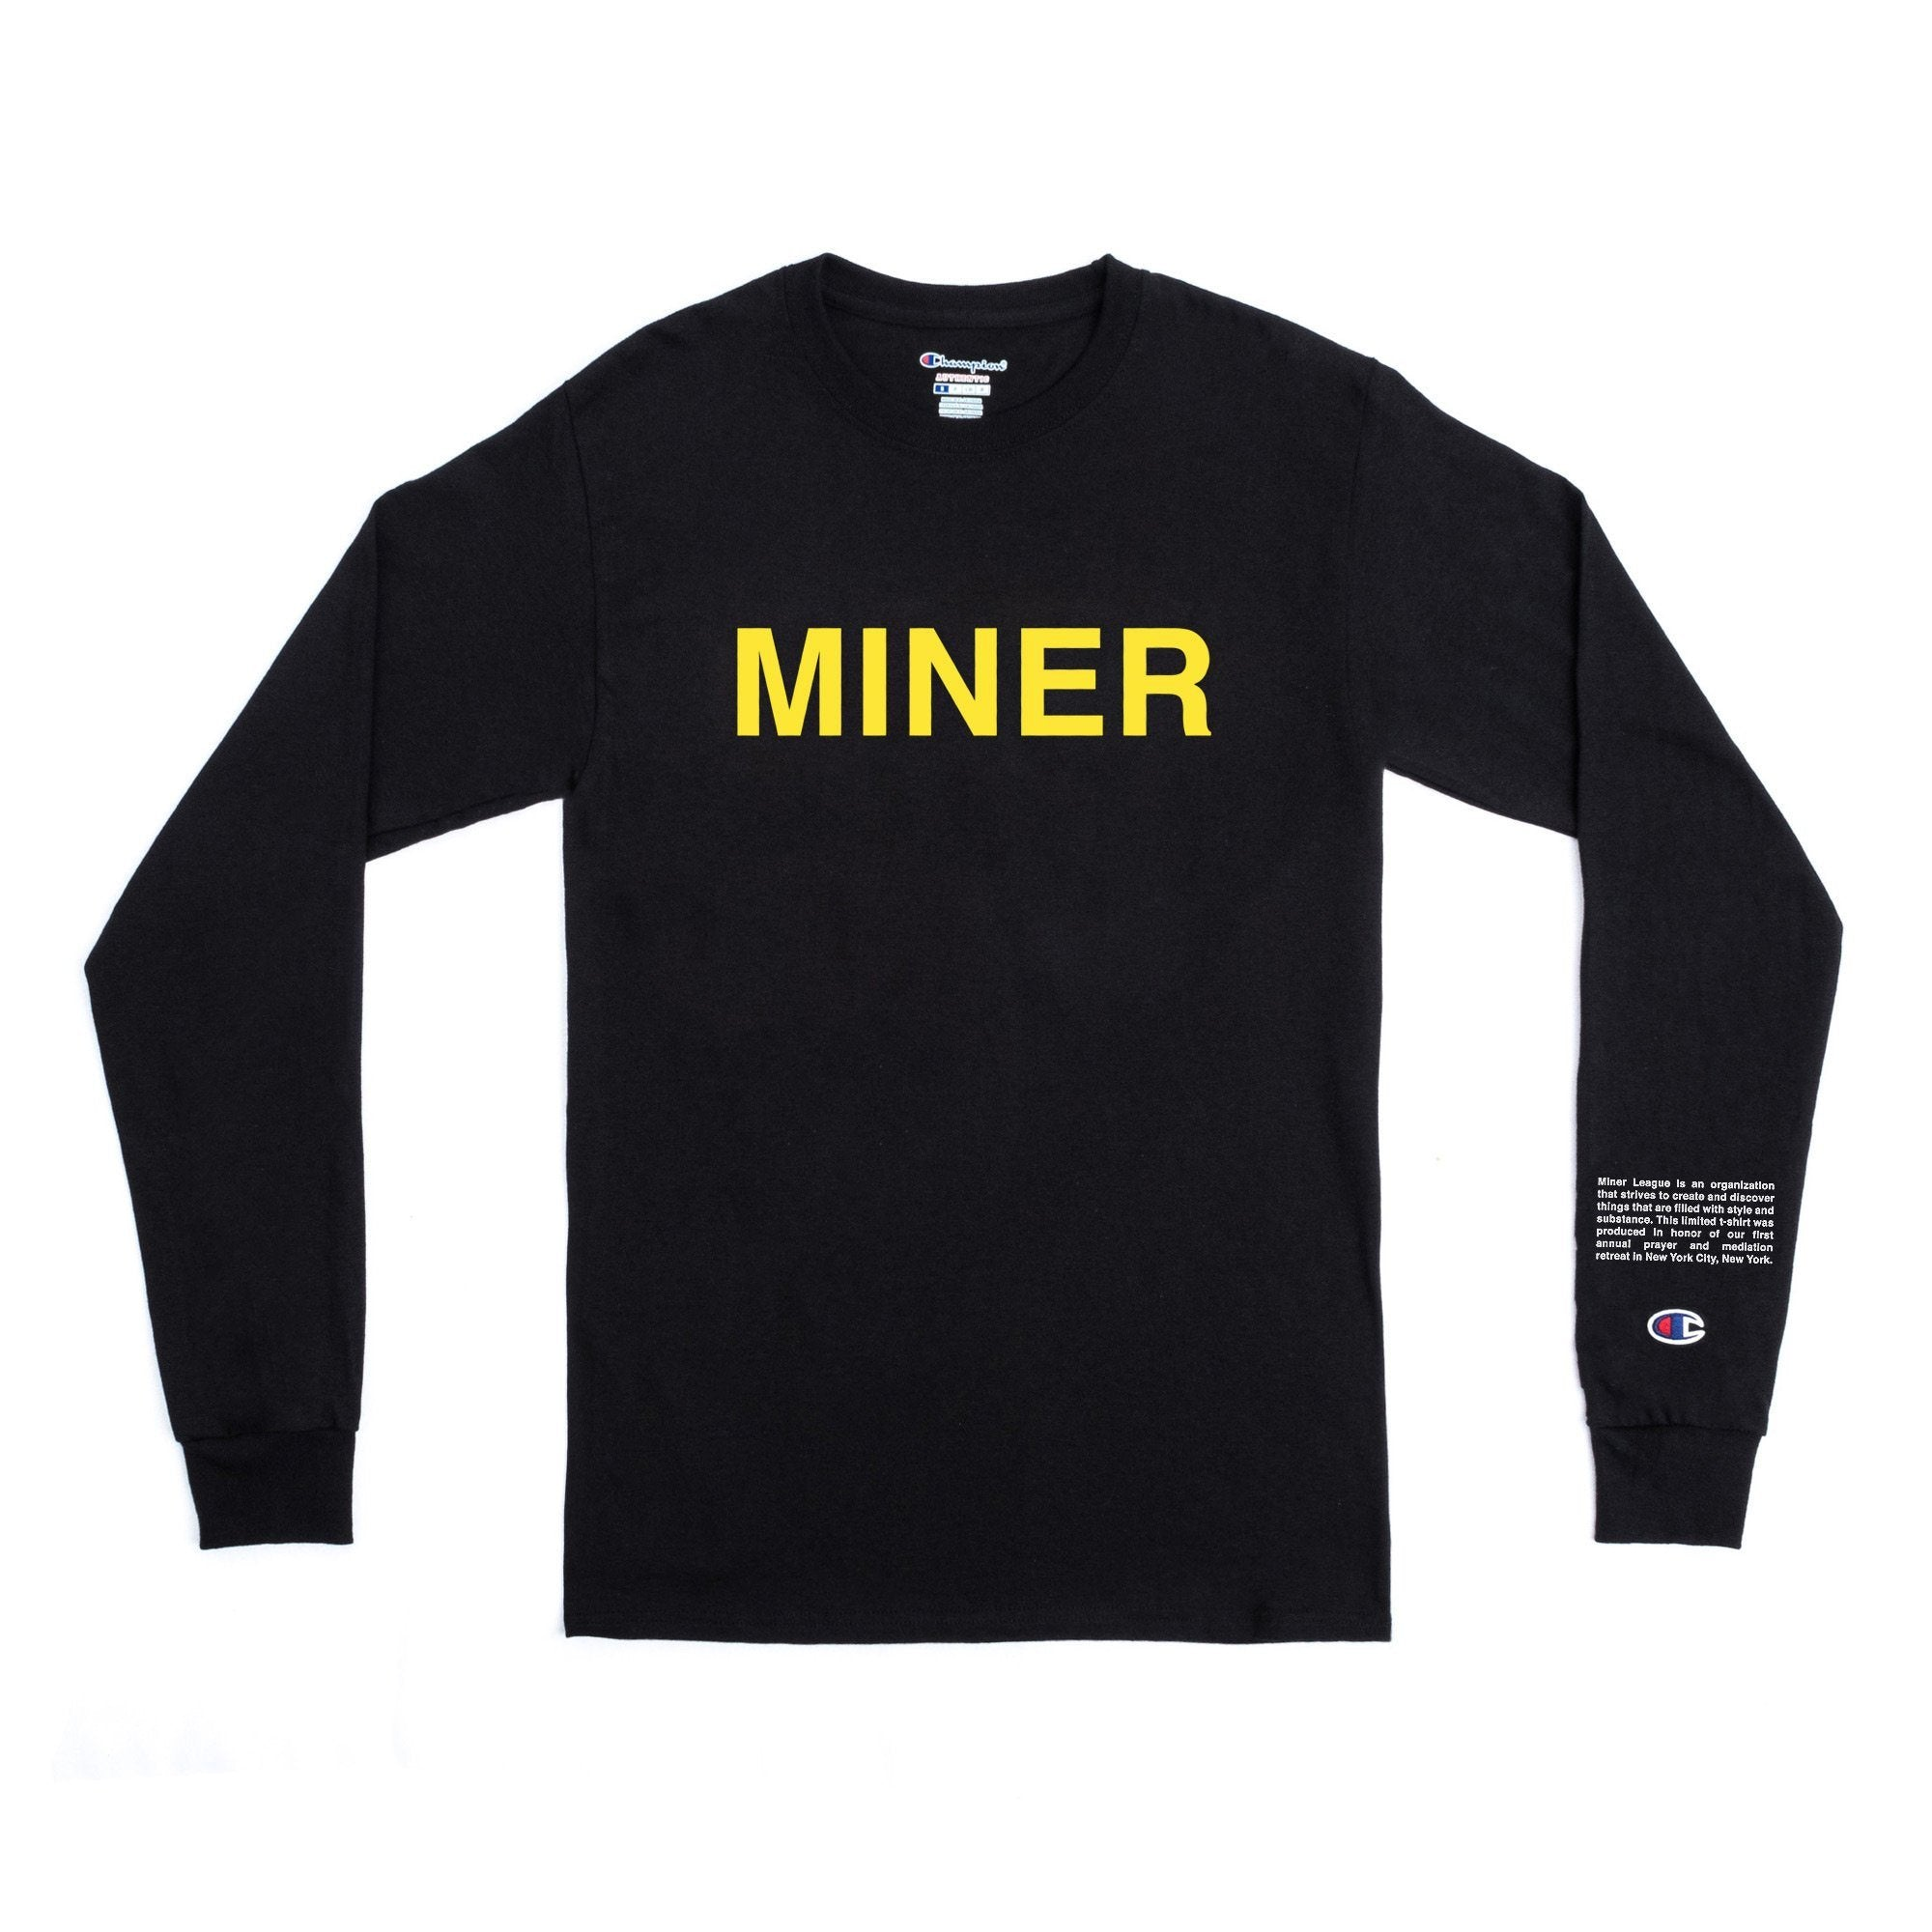 Andy Mineo x Champion 'Code' Long Sleeve